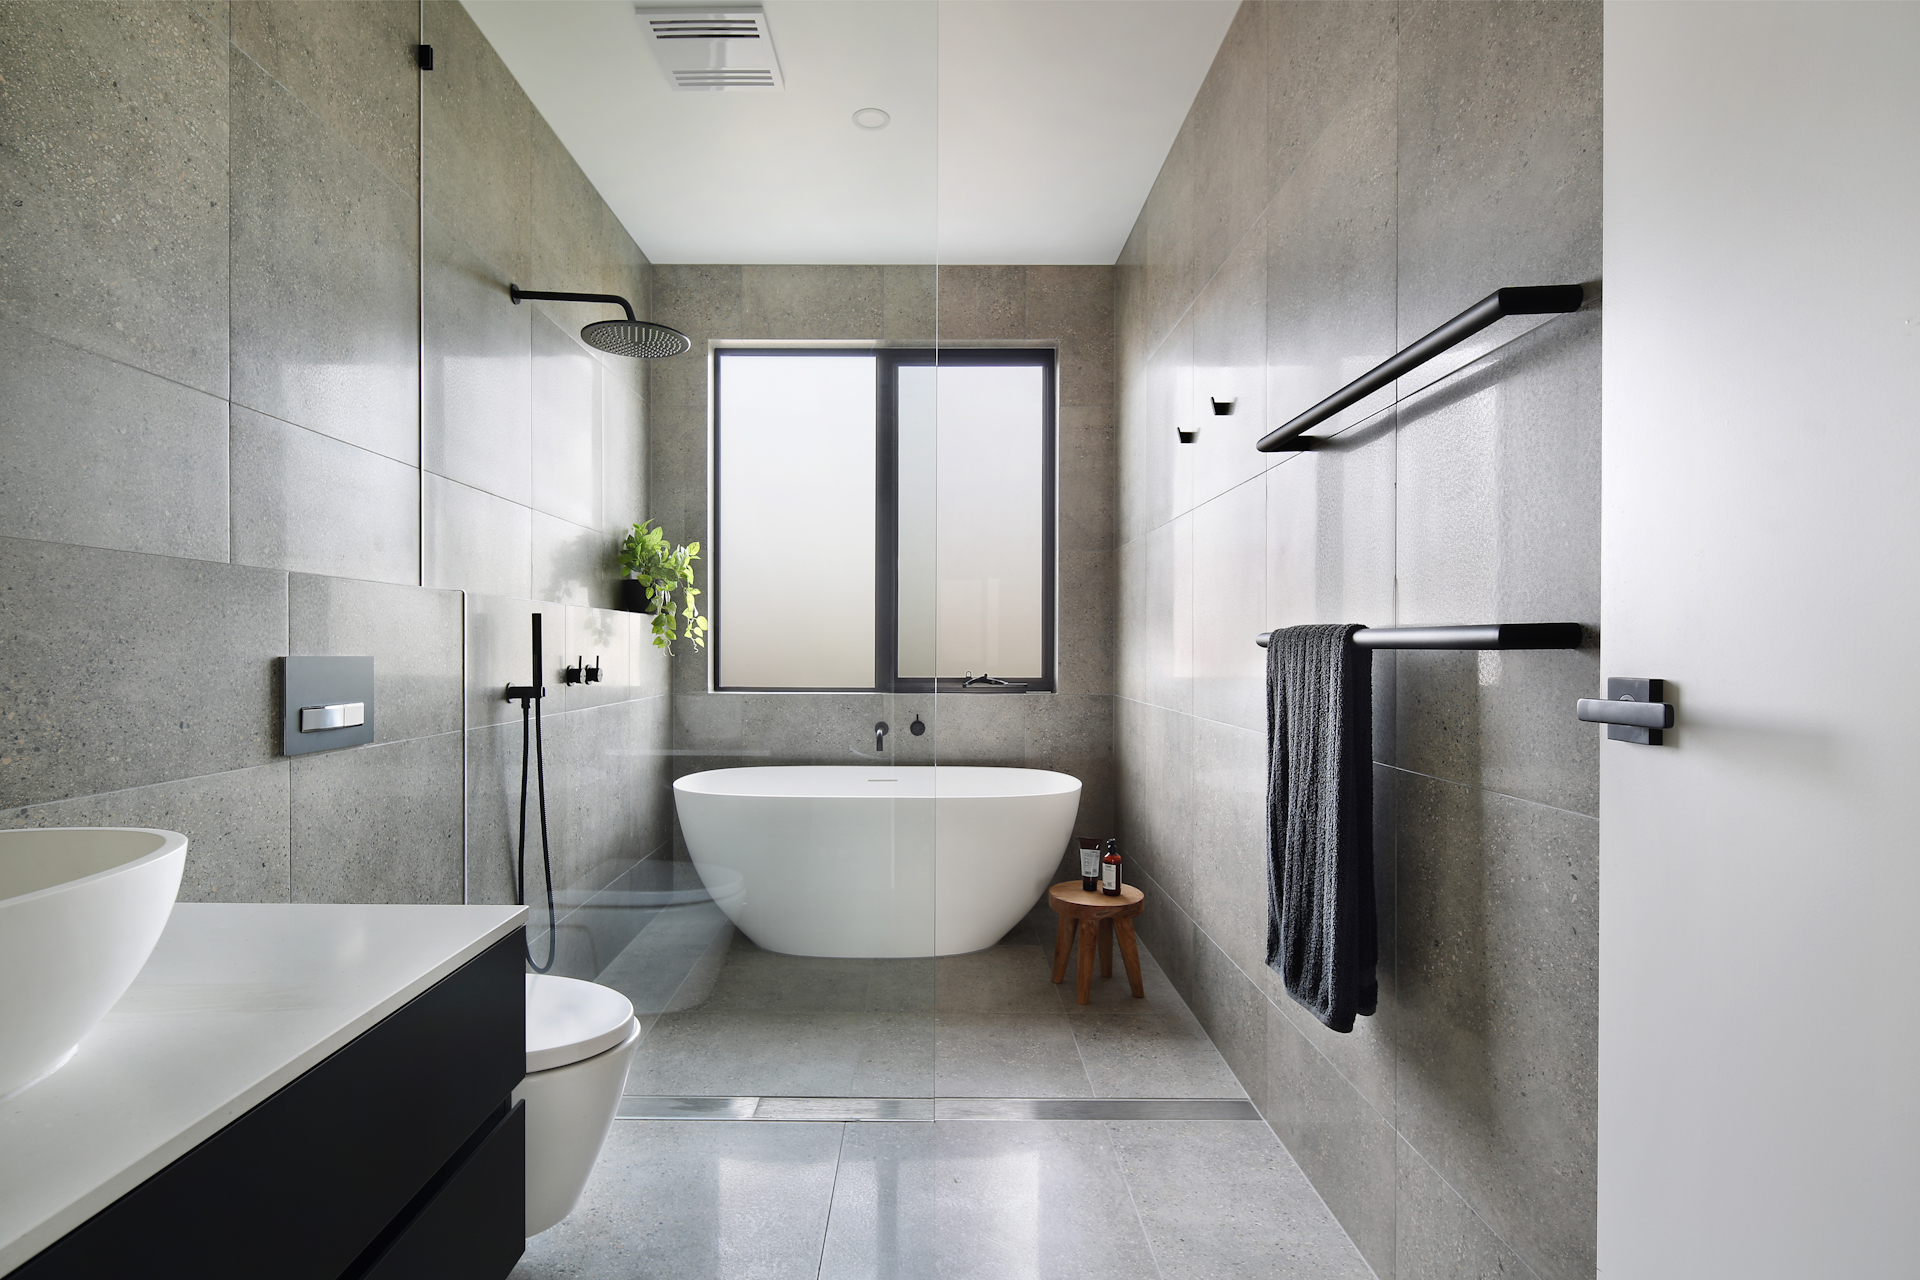 modern tiled bathroom with rainshower and boutique bathtub